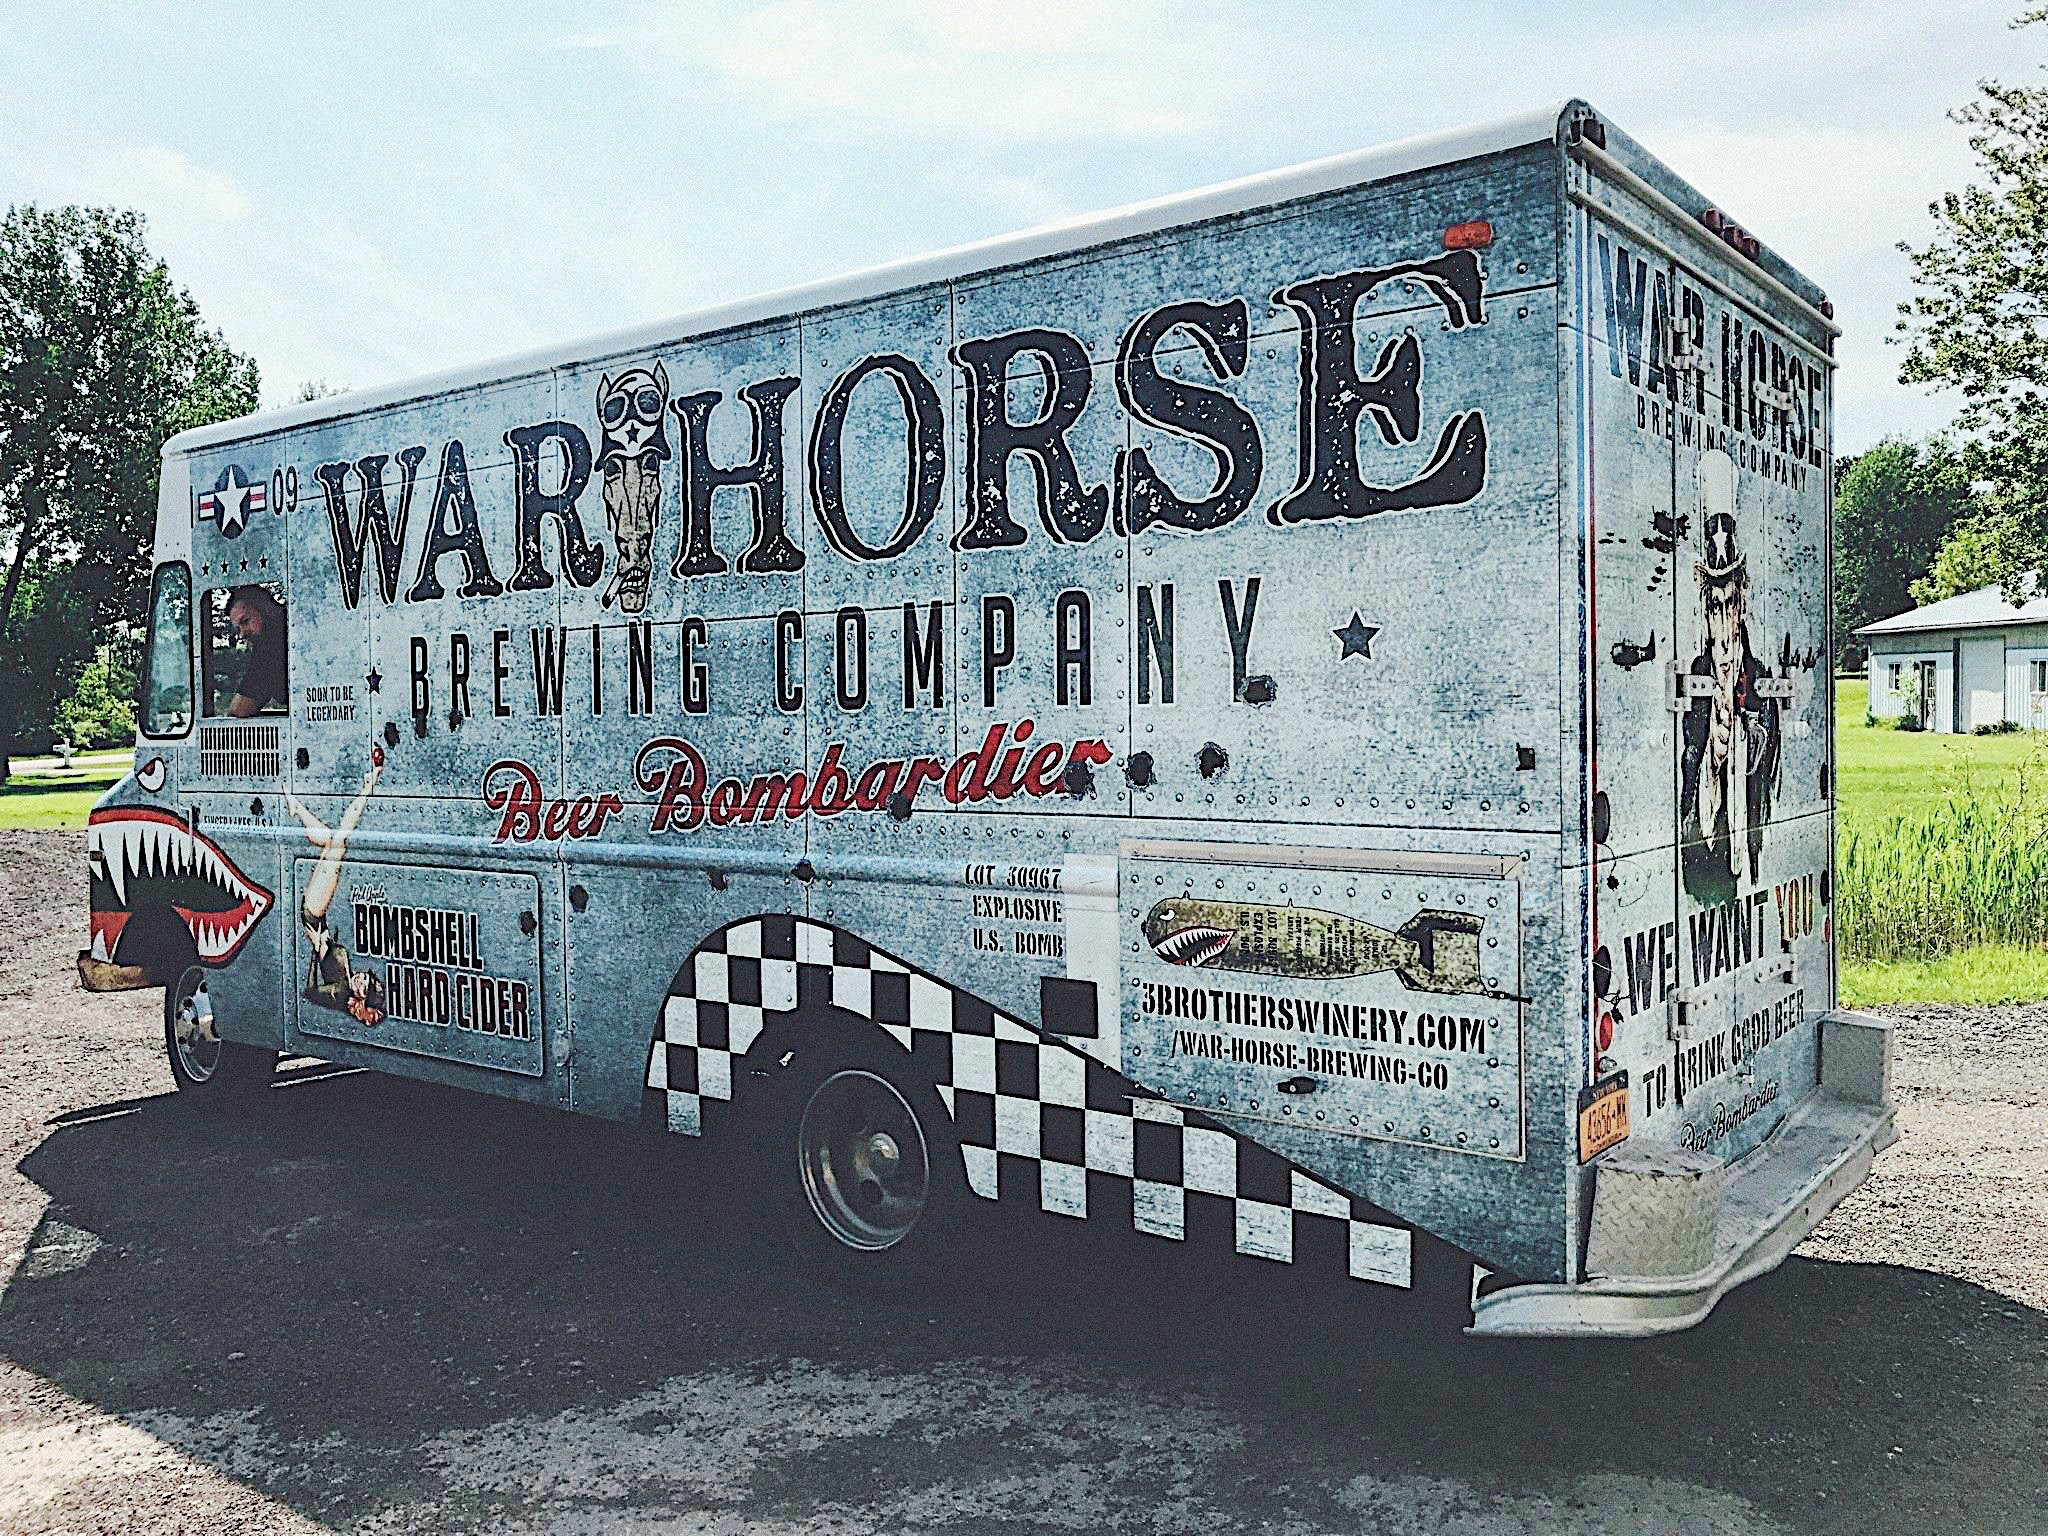 Photo of the side of the War Horse Brewery beer truck